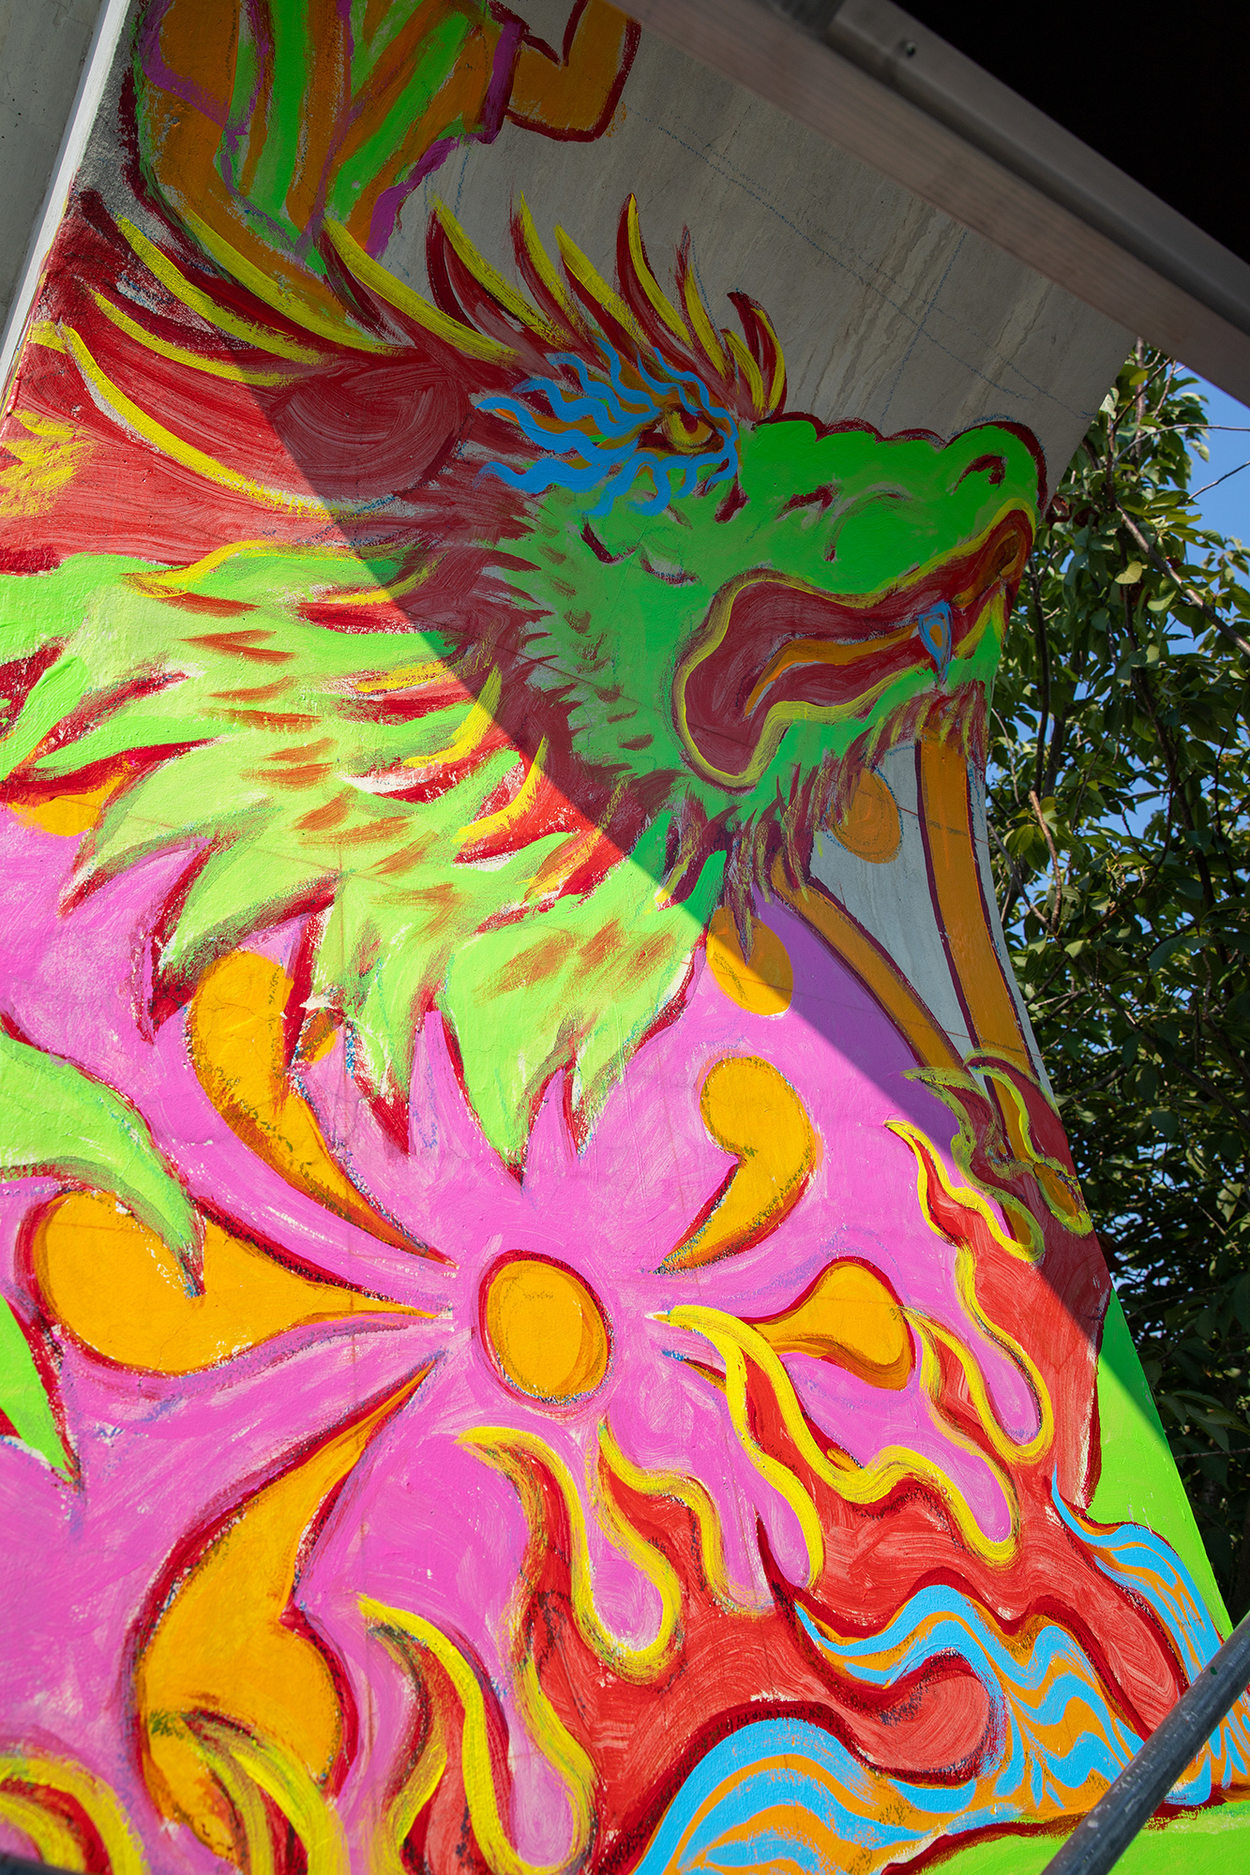 a close up of a mural painting on a pedestrian bridge showing a colorful lion